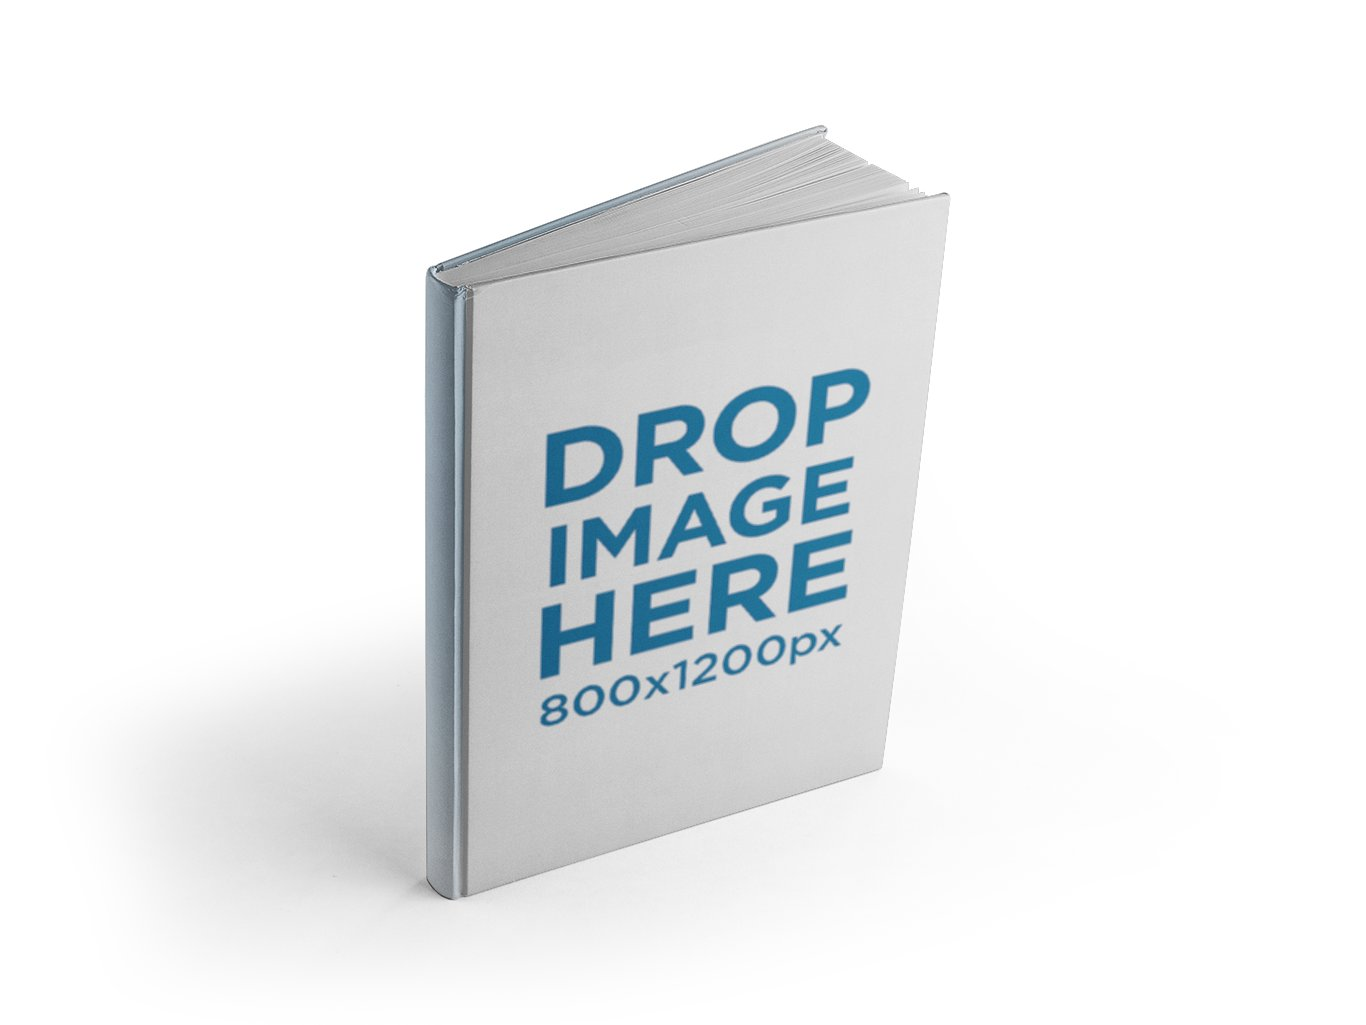 The book is standing on a transparent surface, starting to open itself.  Just drag-and-drop a jpeg or png PlusPng.com  - Book Drop PNG